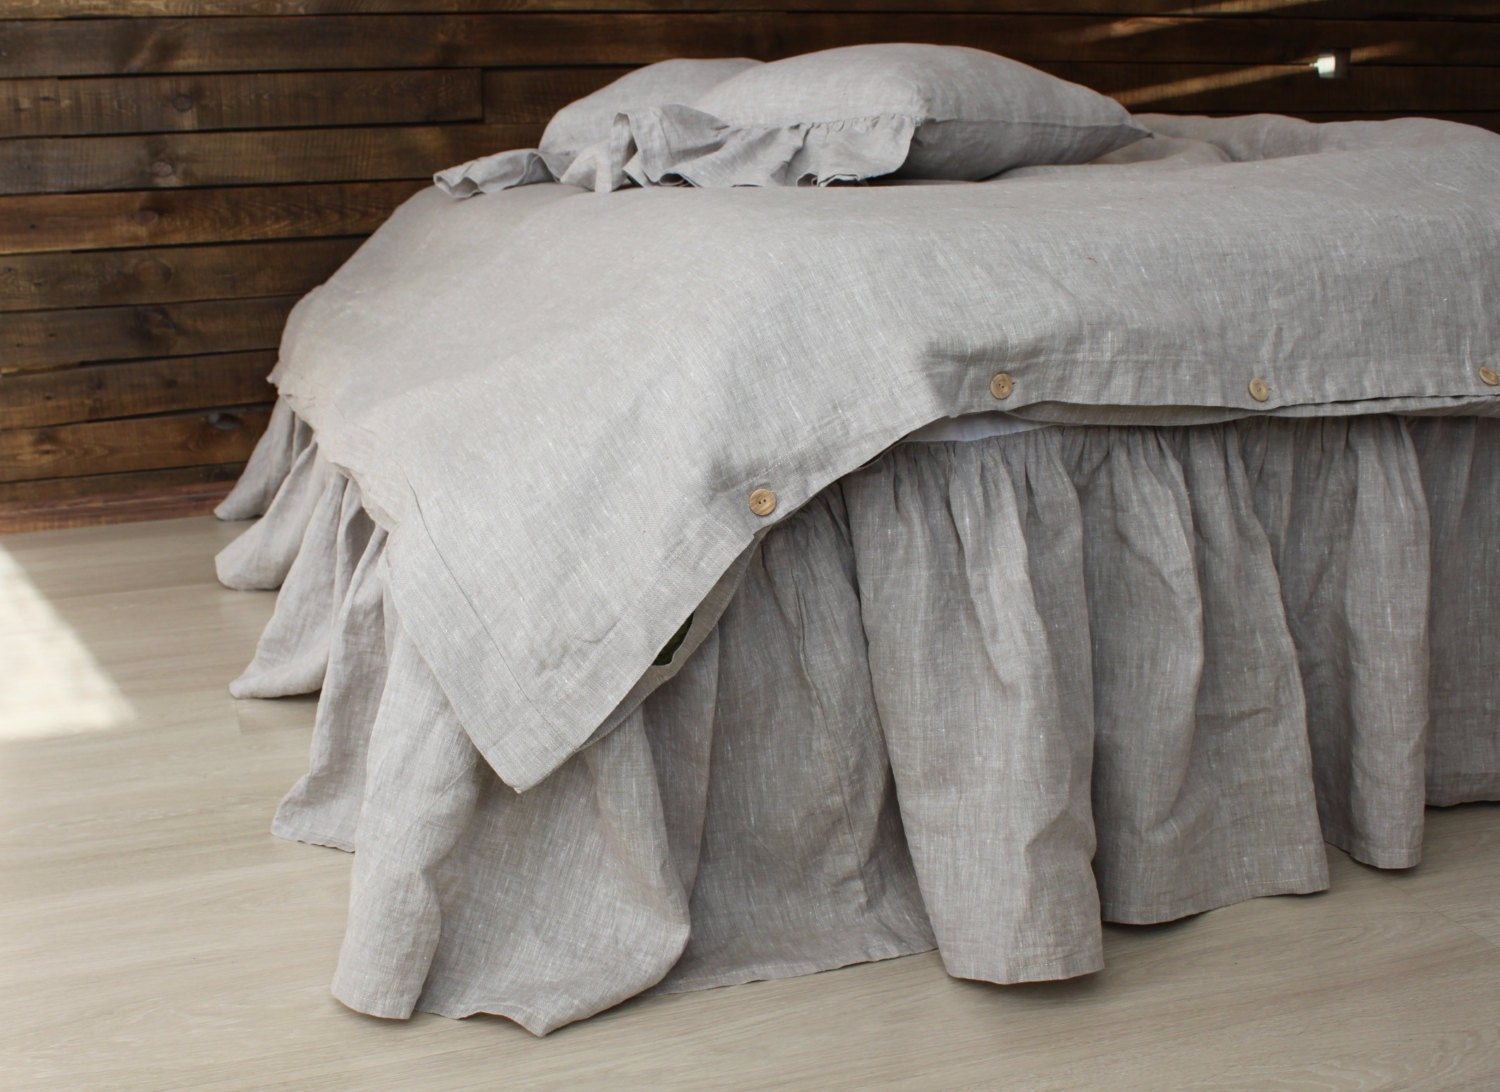 Linen Dust Ruffles Shabby Chic Bedding Romantic Country